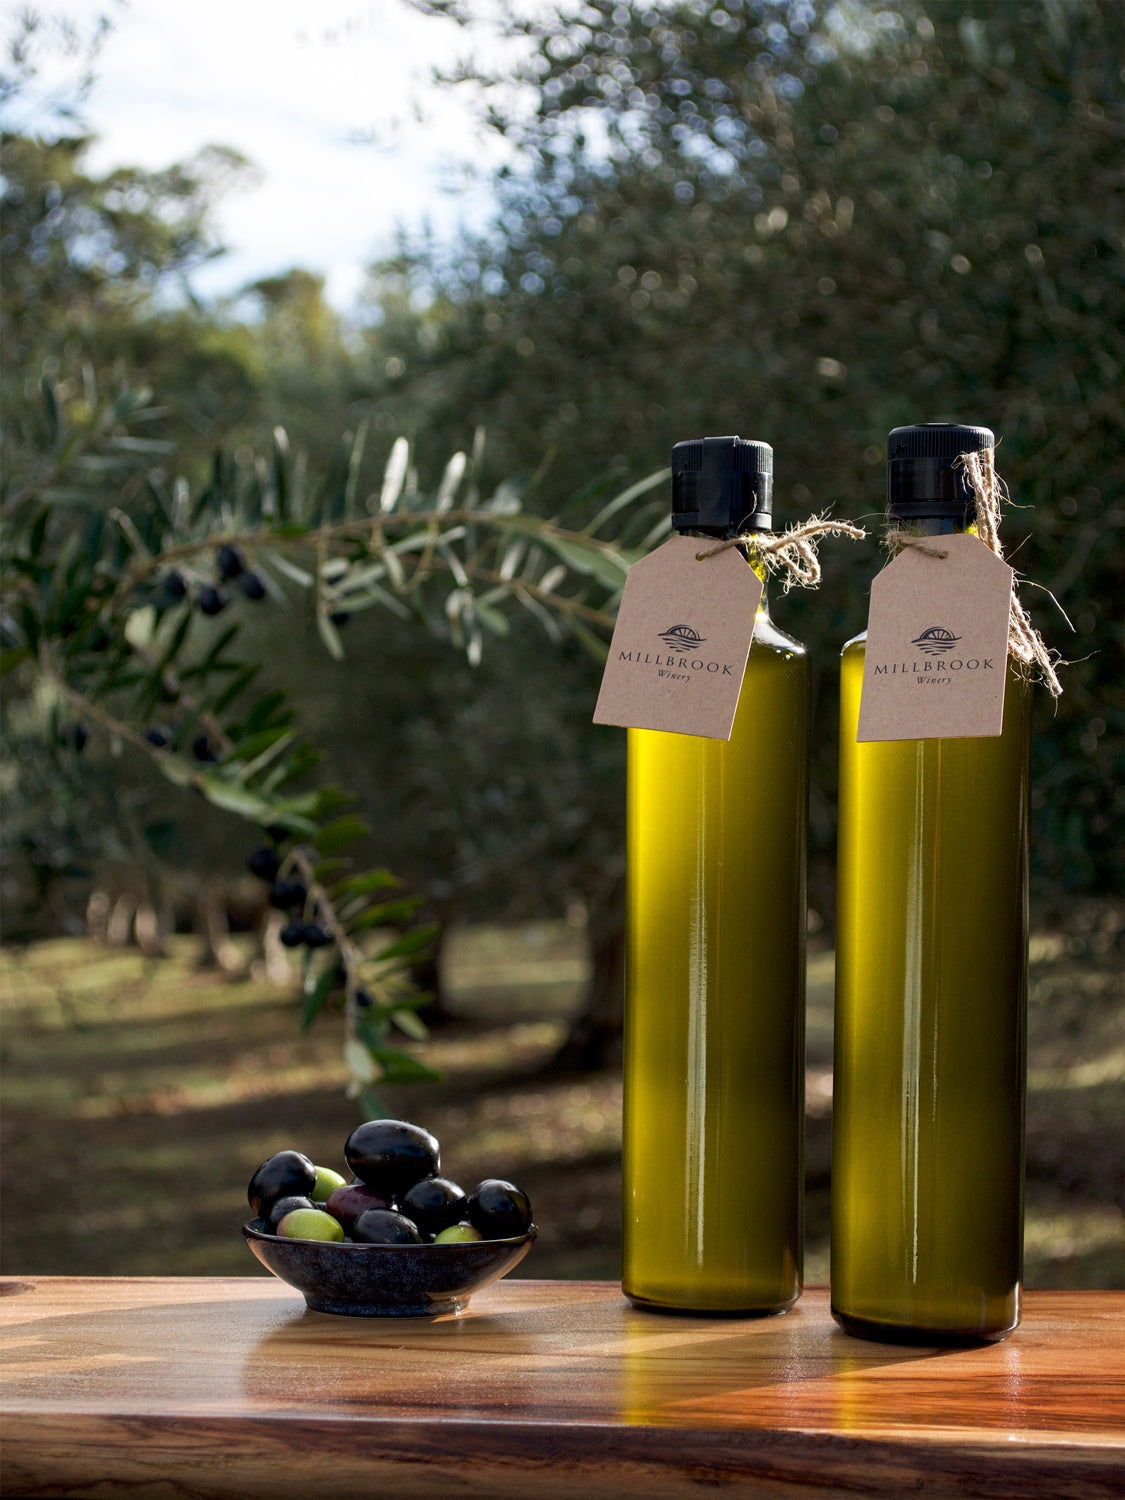 Millbrook Extra Virgin Olive Oil now on sale